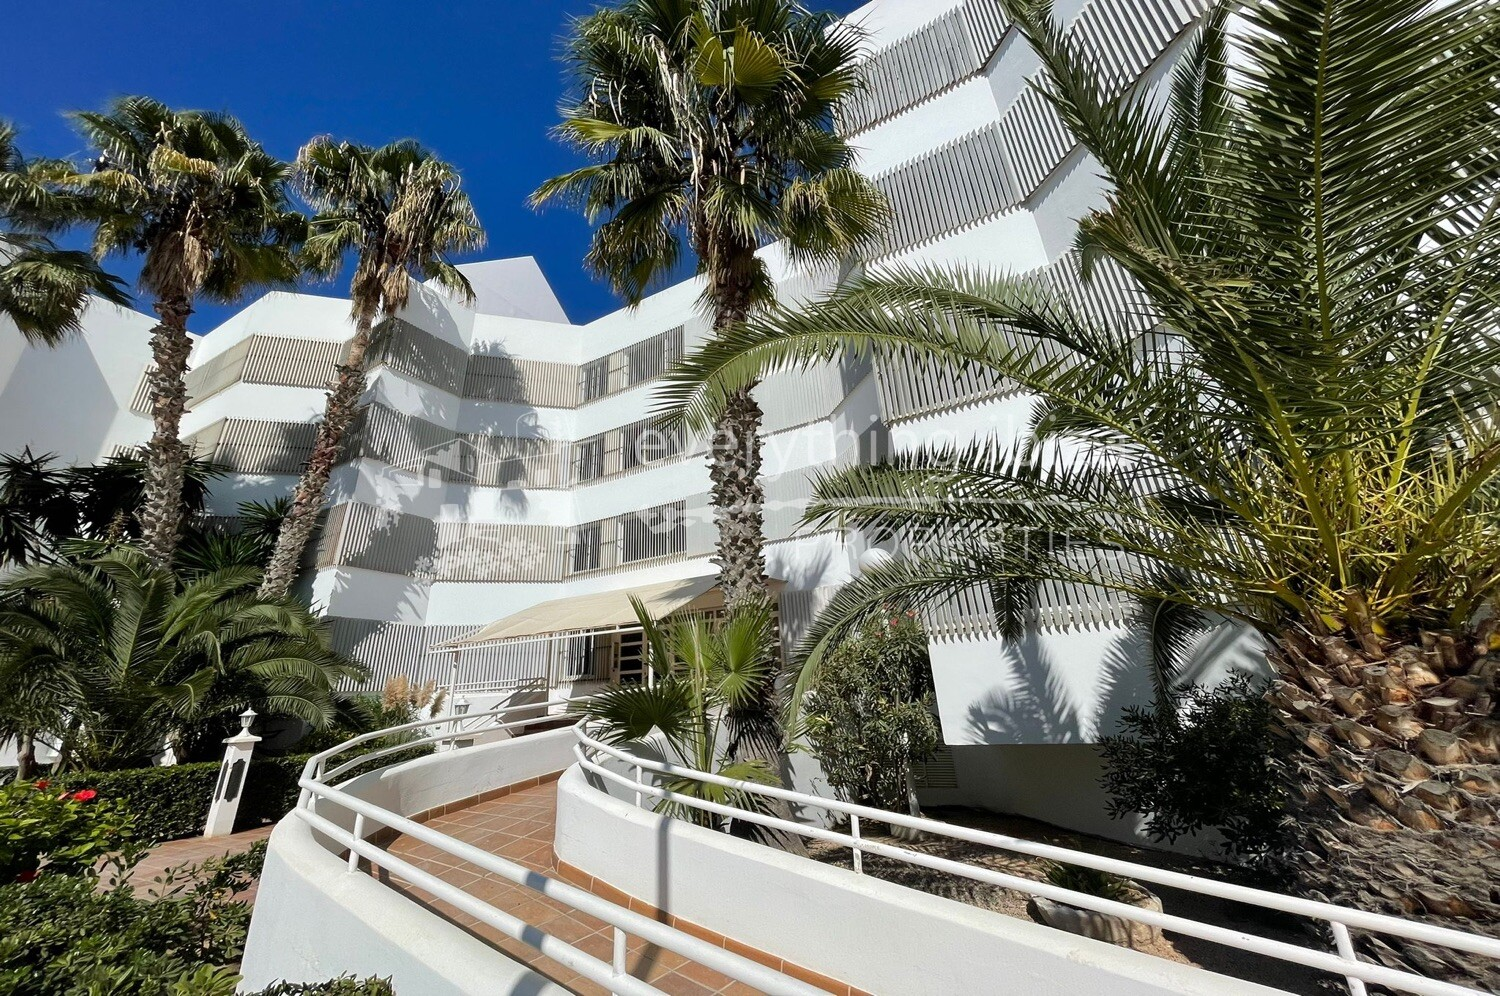 Frontline Penthouse Apartment with Stunning Views, ref. 1394, for sale in Ibiza by everything ibiza Properties